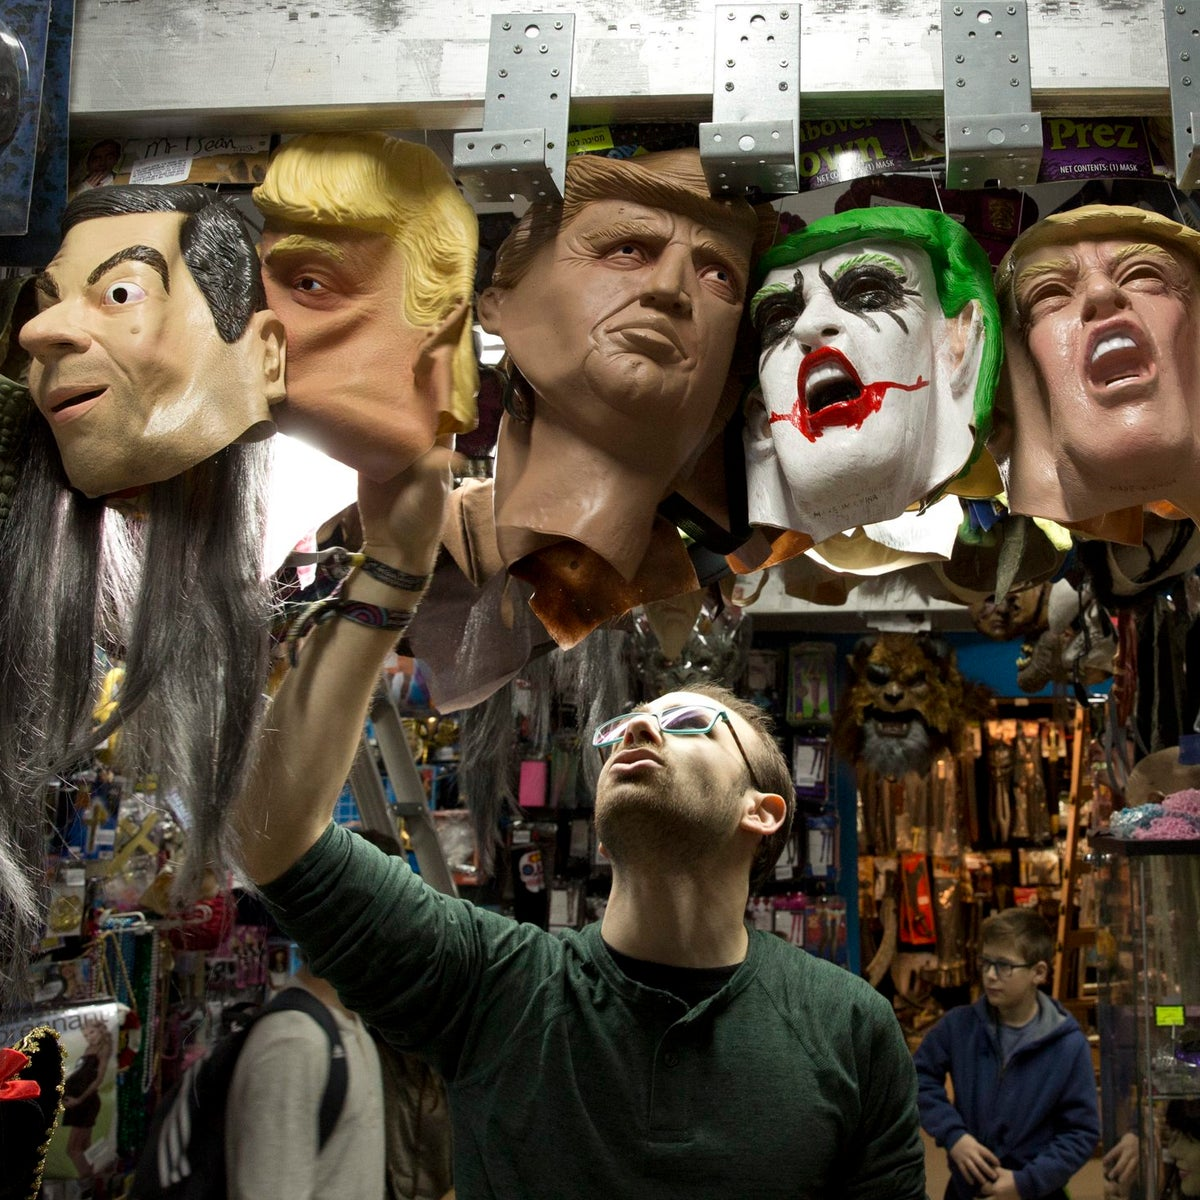 An array of Trump masks on sale at Effects costume story in Herzliya. Note the interesting placement of a Mr. Bean mask next to the Trumps.